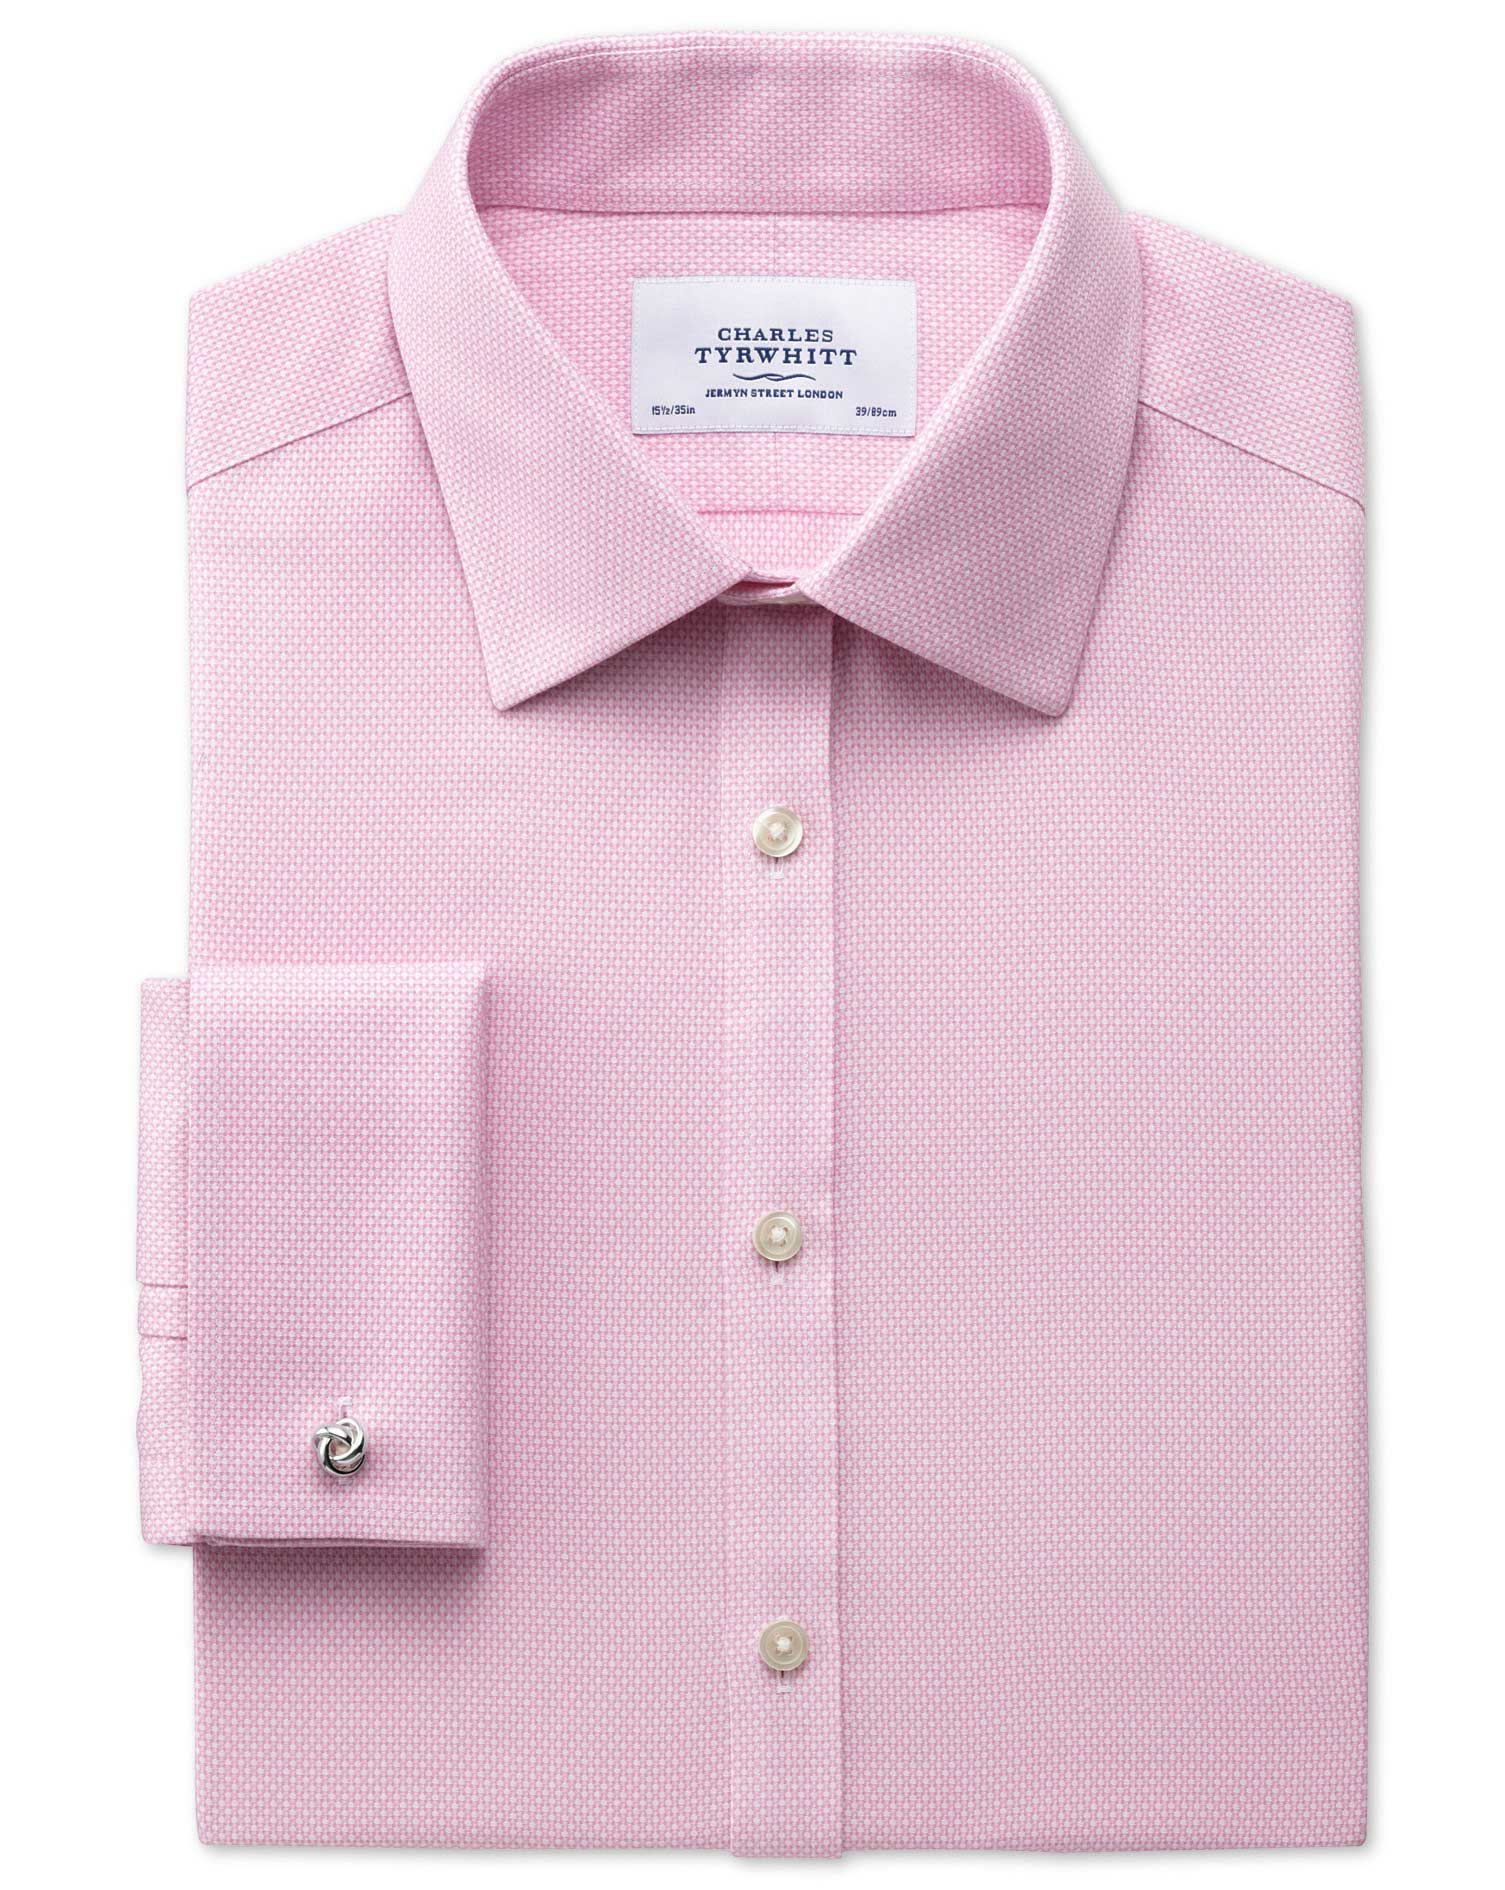 Classic Fit Non-Iron Honeycomb Pink Cotton Formal Shirt Single Cuff Size 16/38 by Charles Tyrwhitt